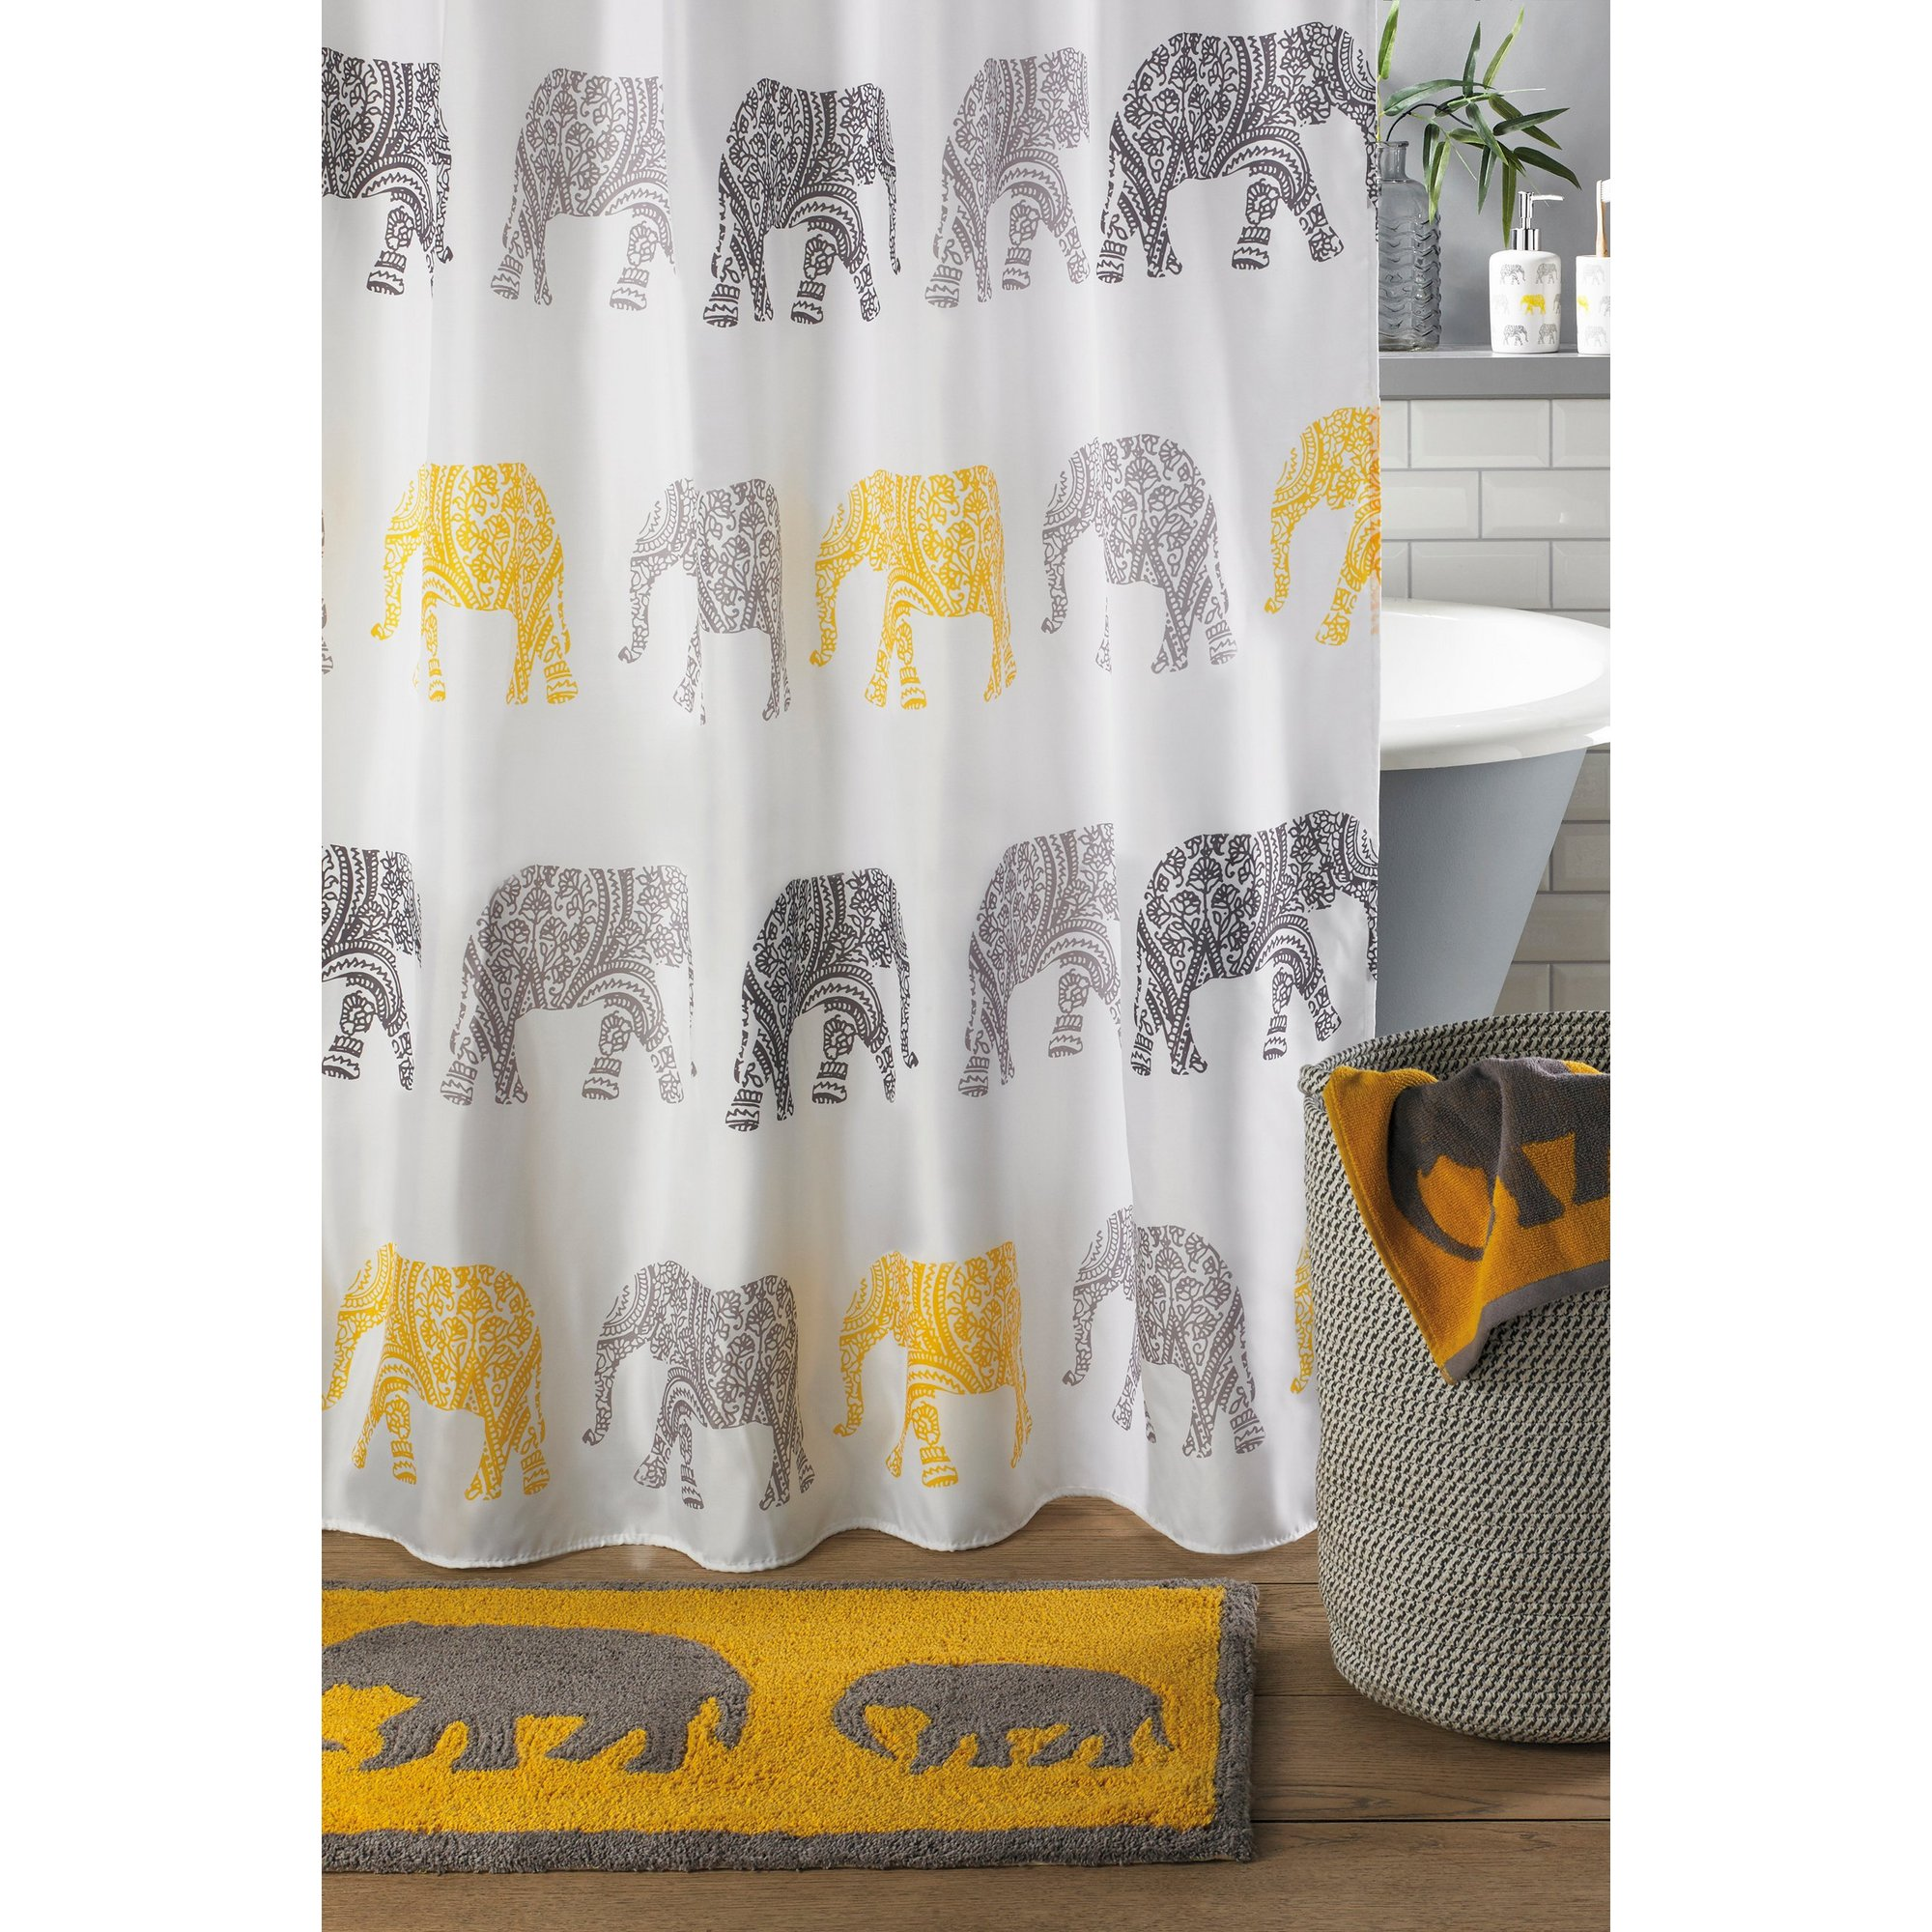 Image of Beldray Elephant Shower Curtain